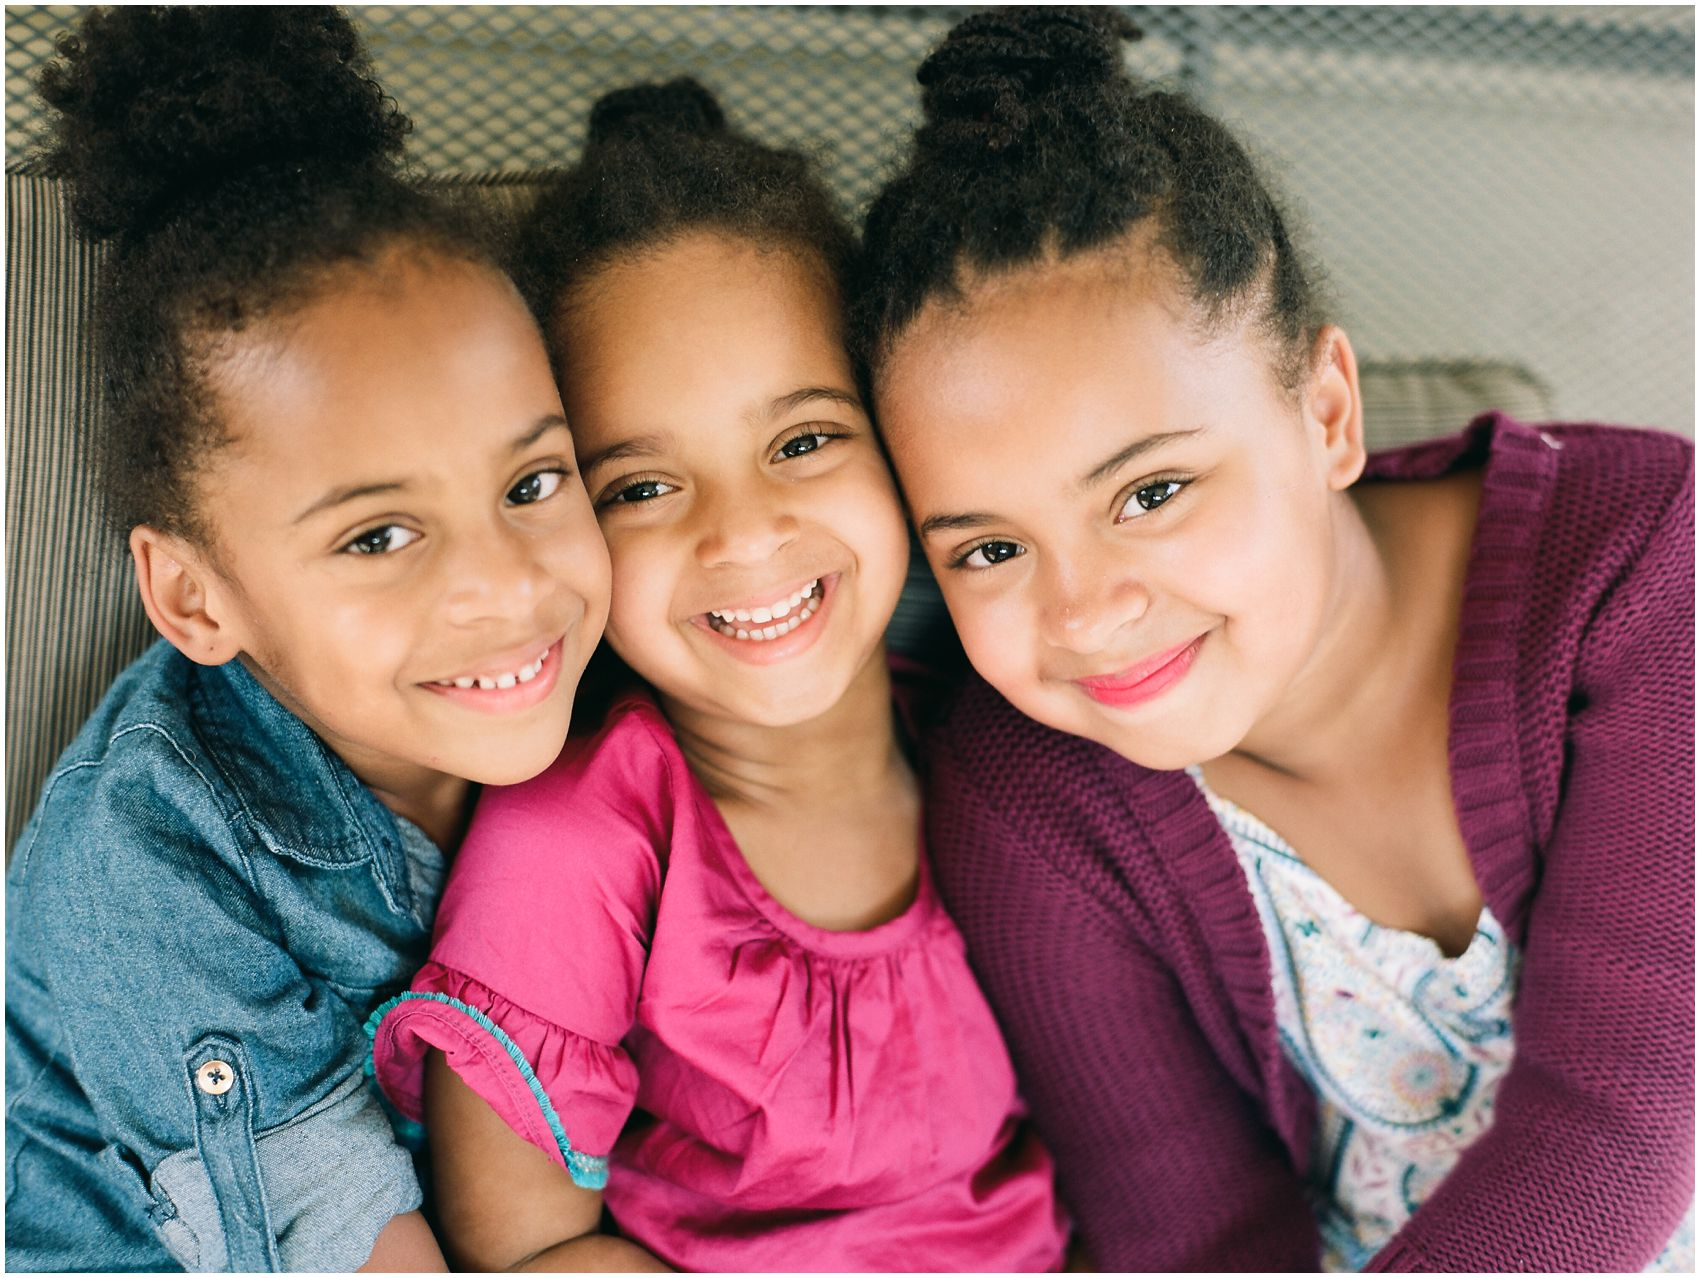 Family session with 3 sisters smiling together in West Orange NJ